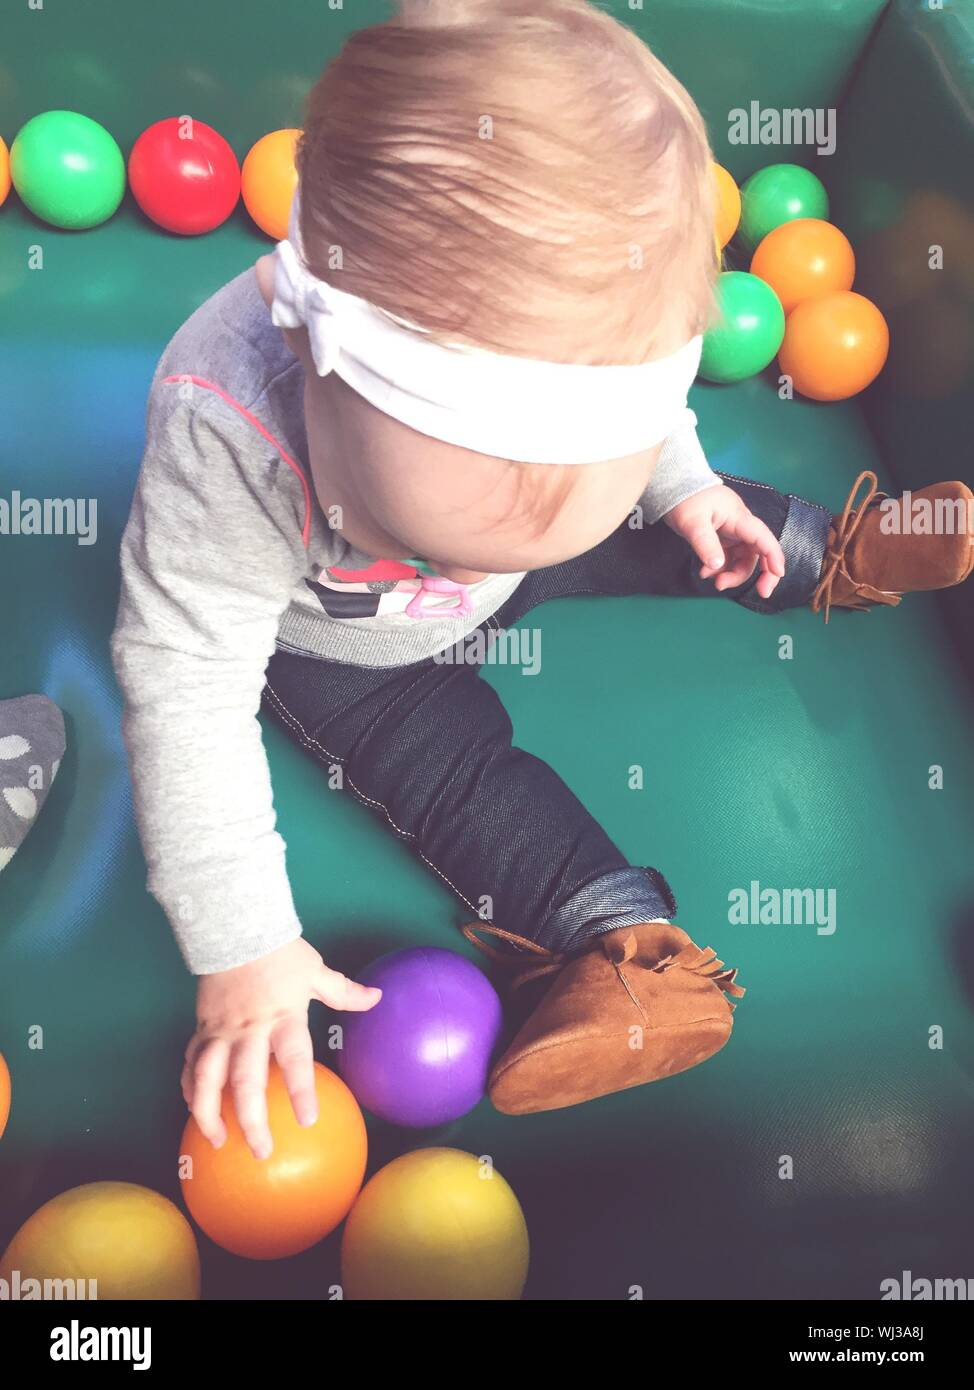 High Angle View Of Baby Boy Playing With Colorful Balls In Ball Pool Stock Photo